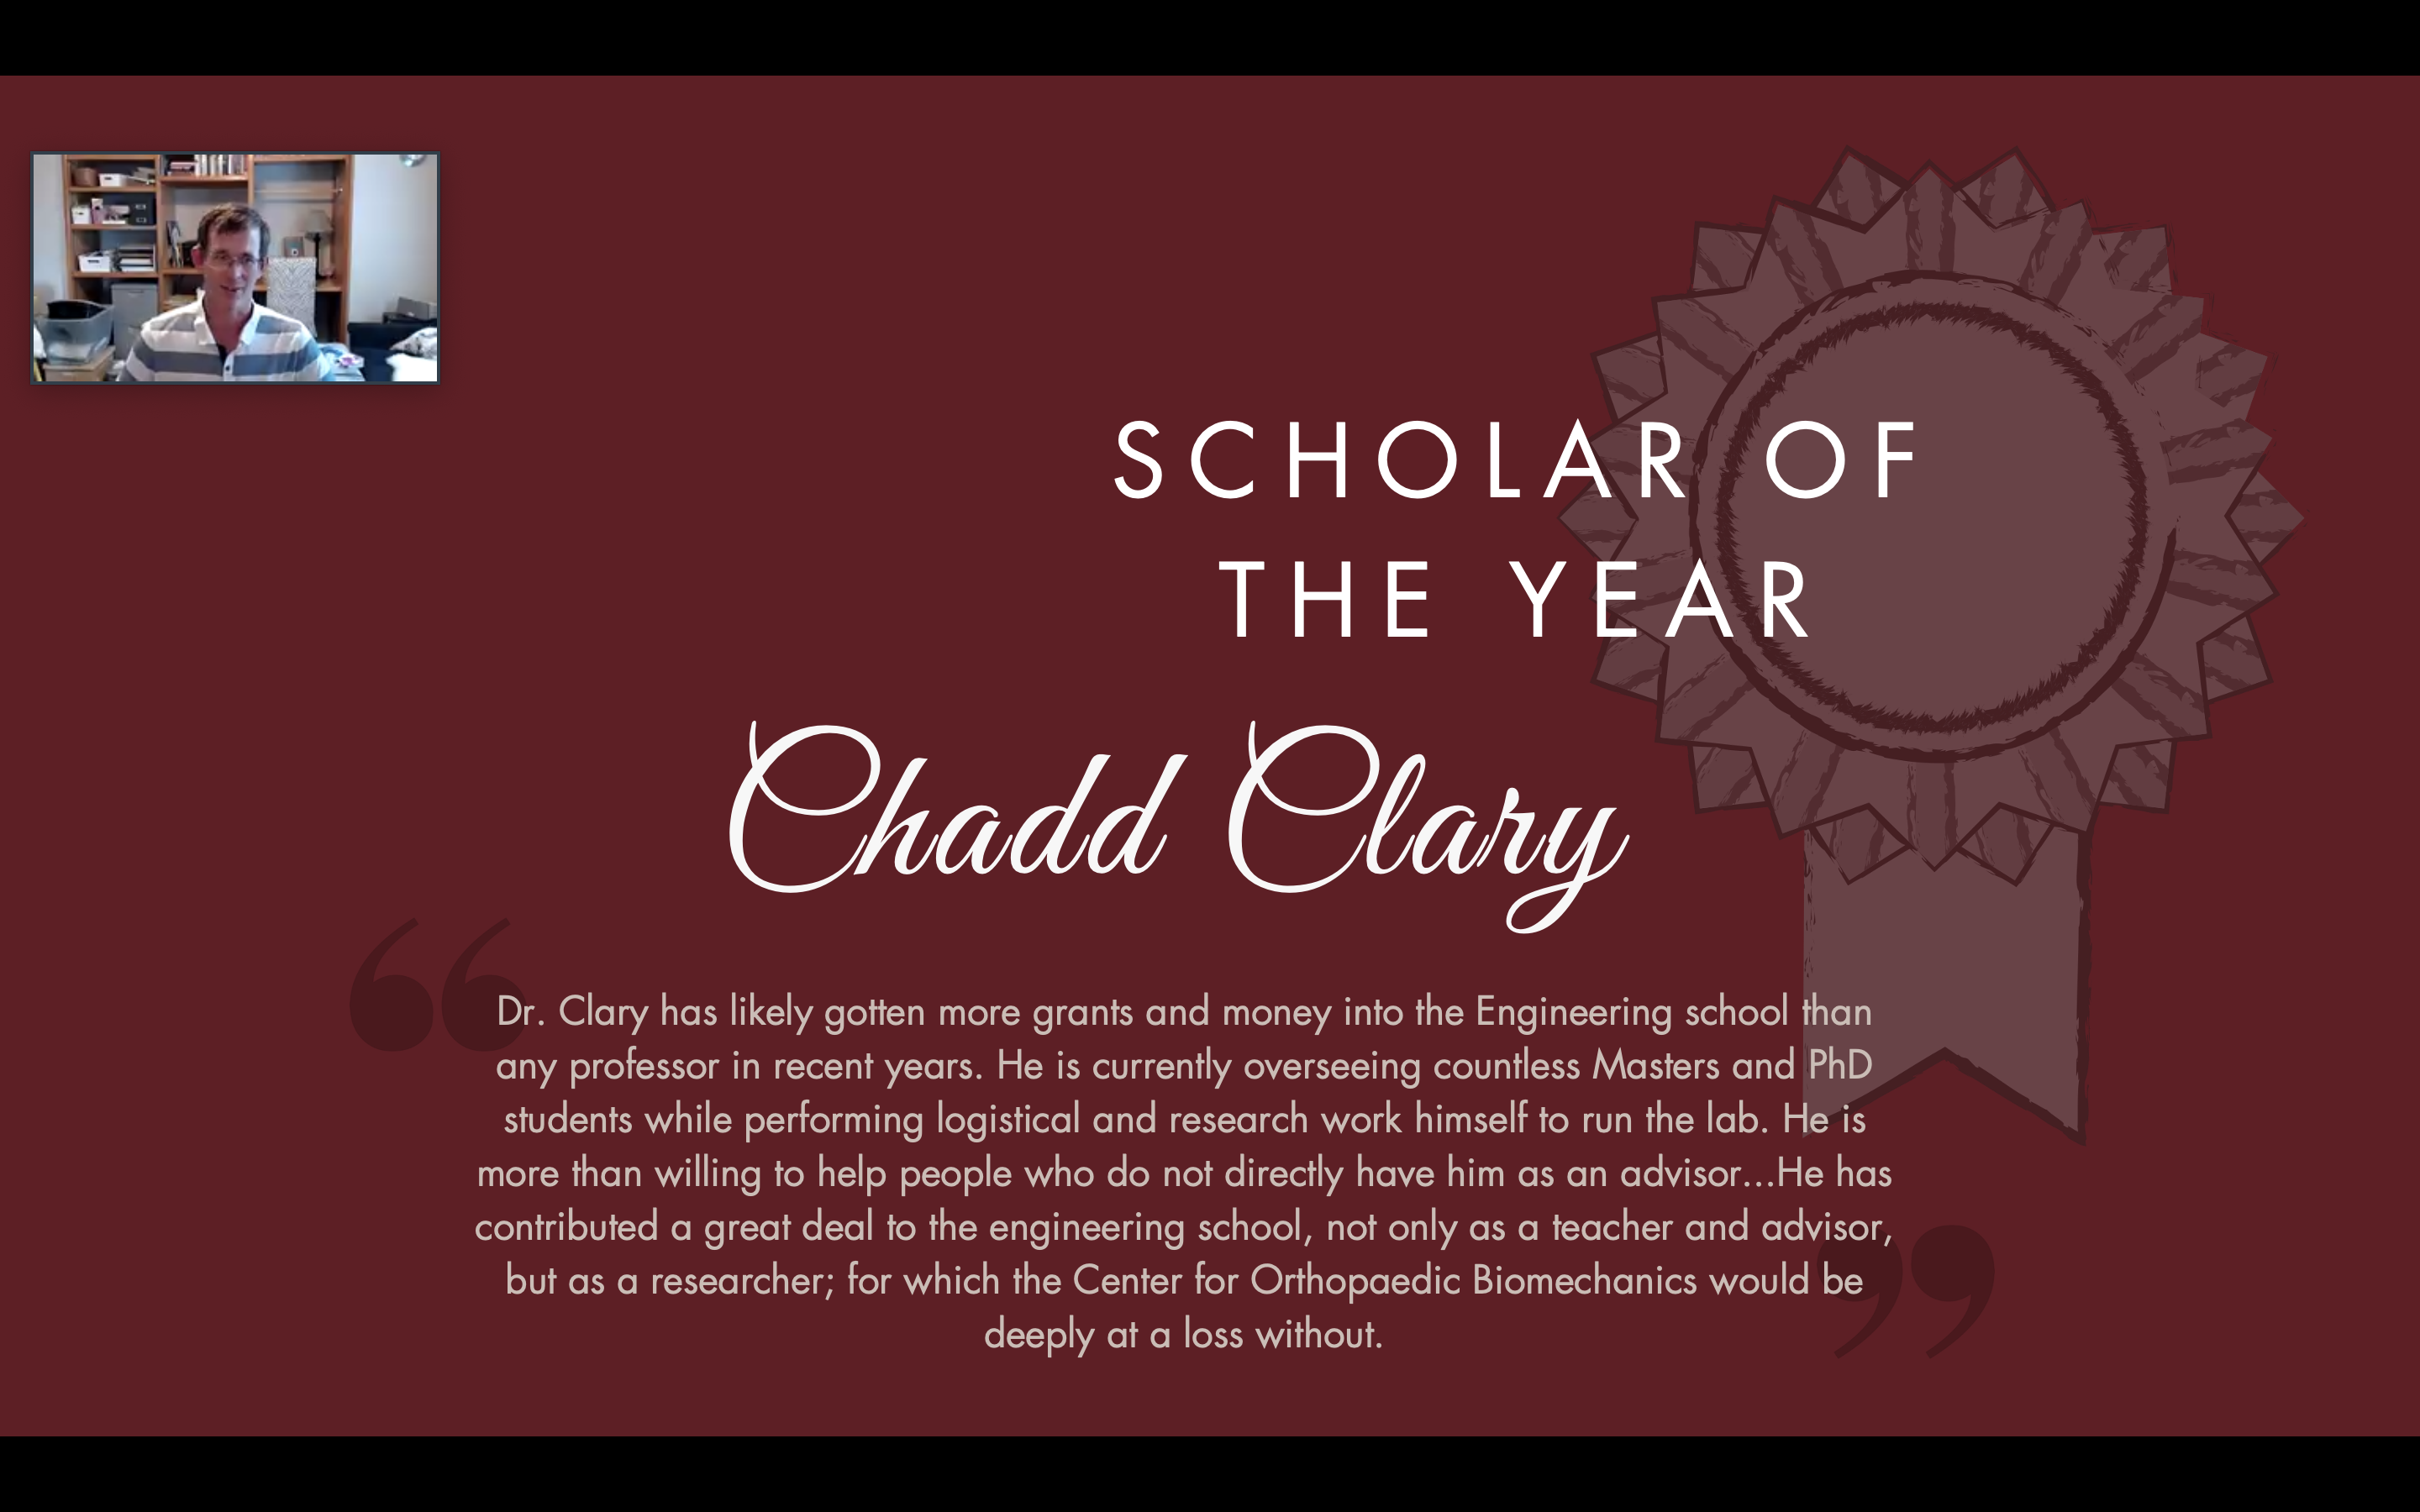 Scholar of the Year - Chadd Clary